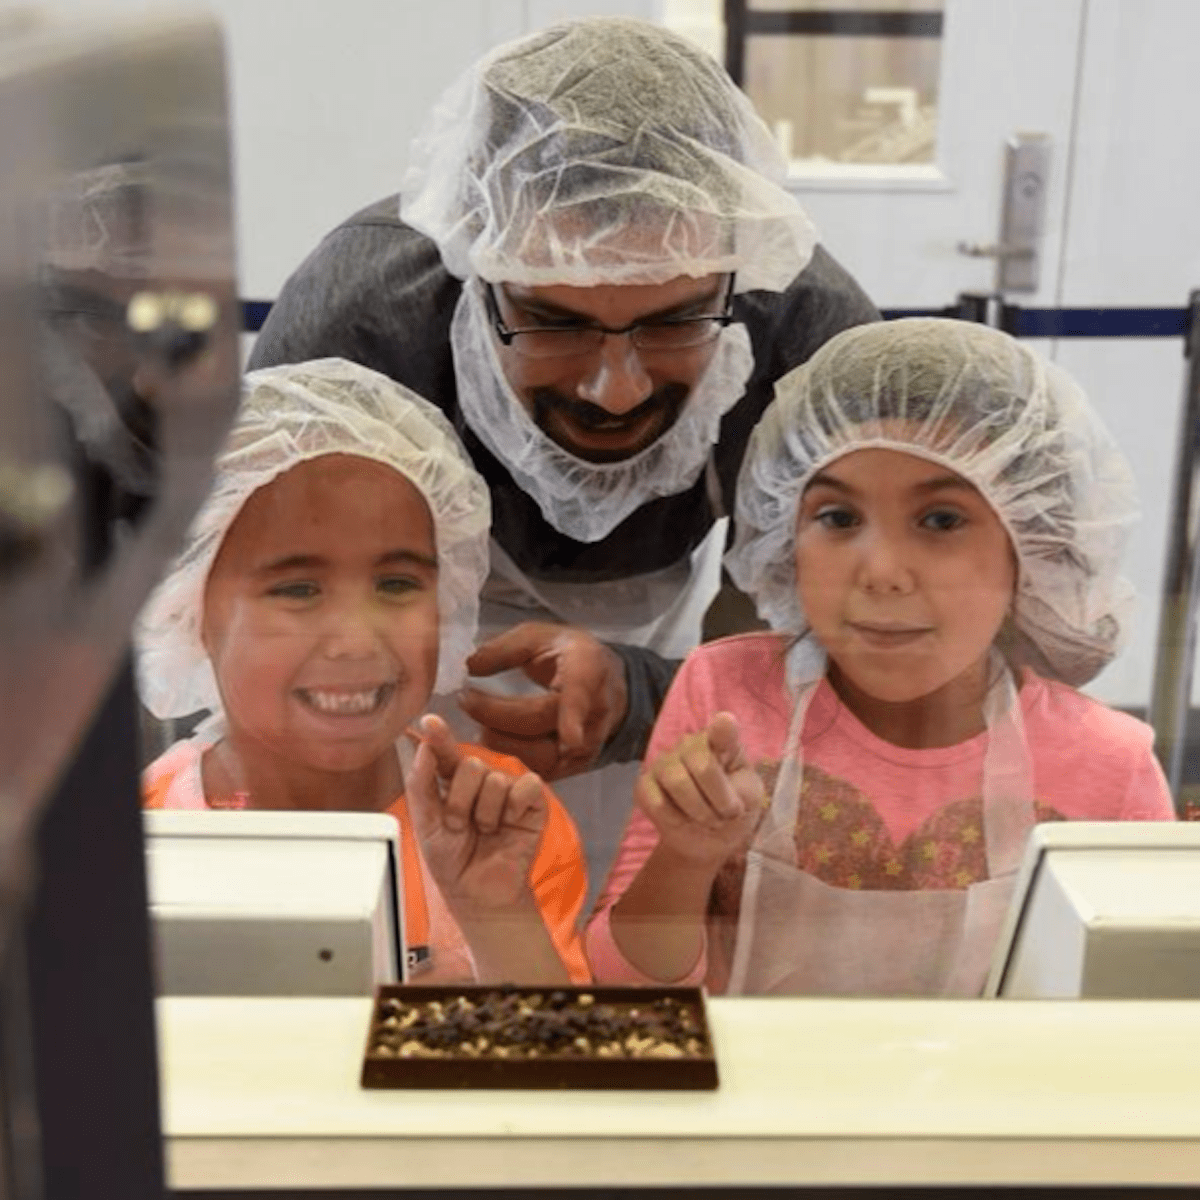 Children looking at chocolate at Hershey's World